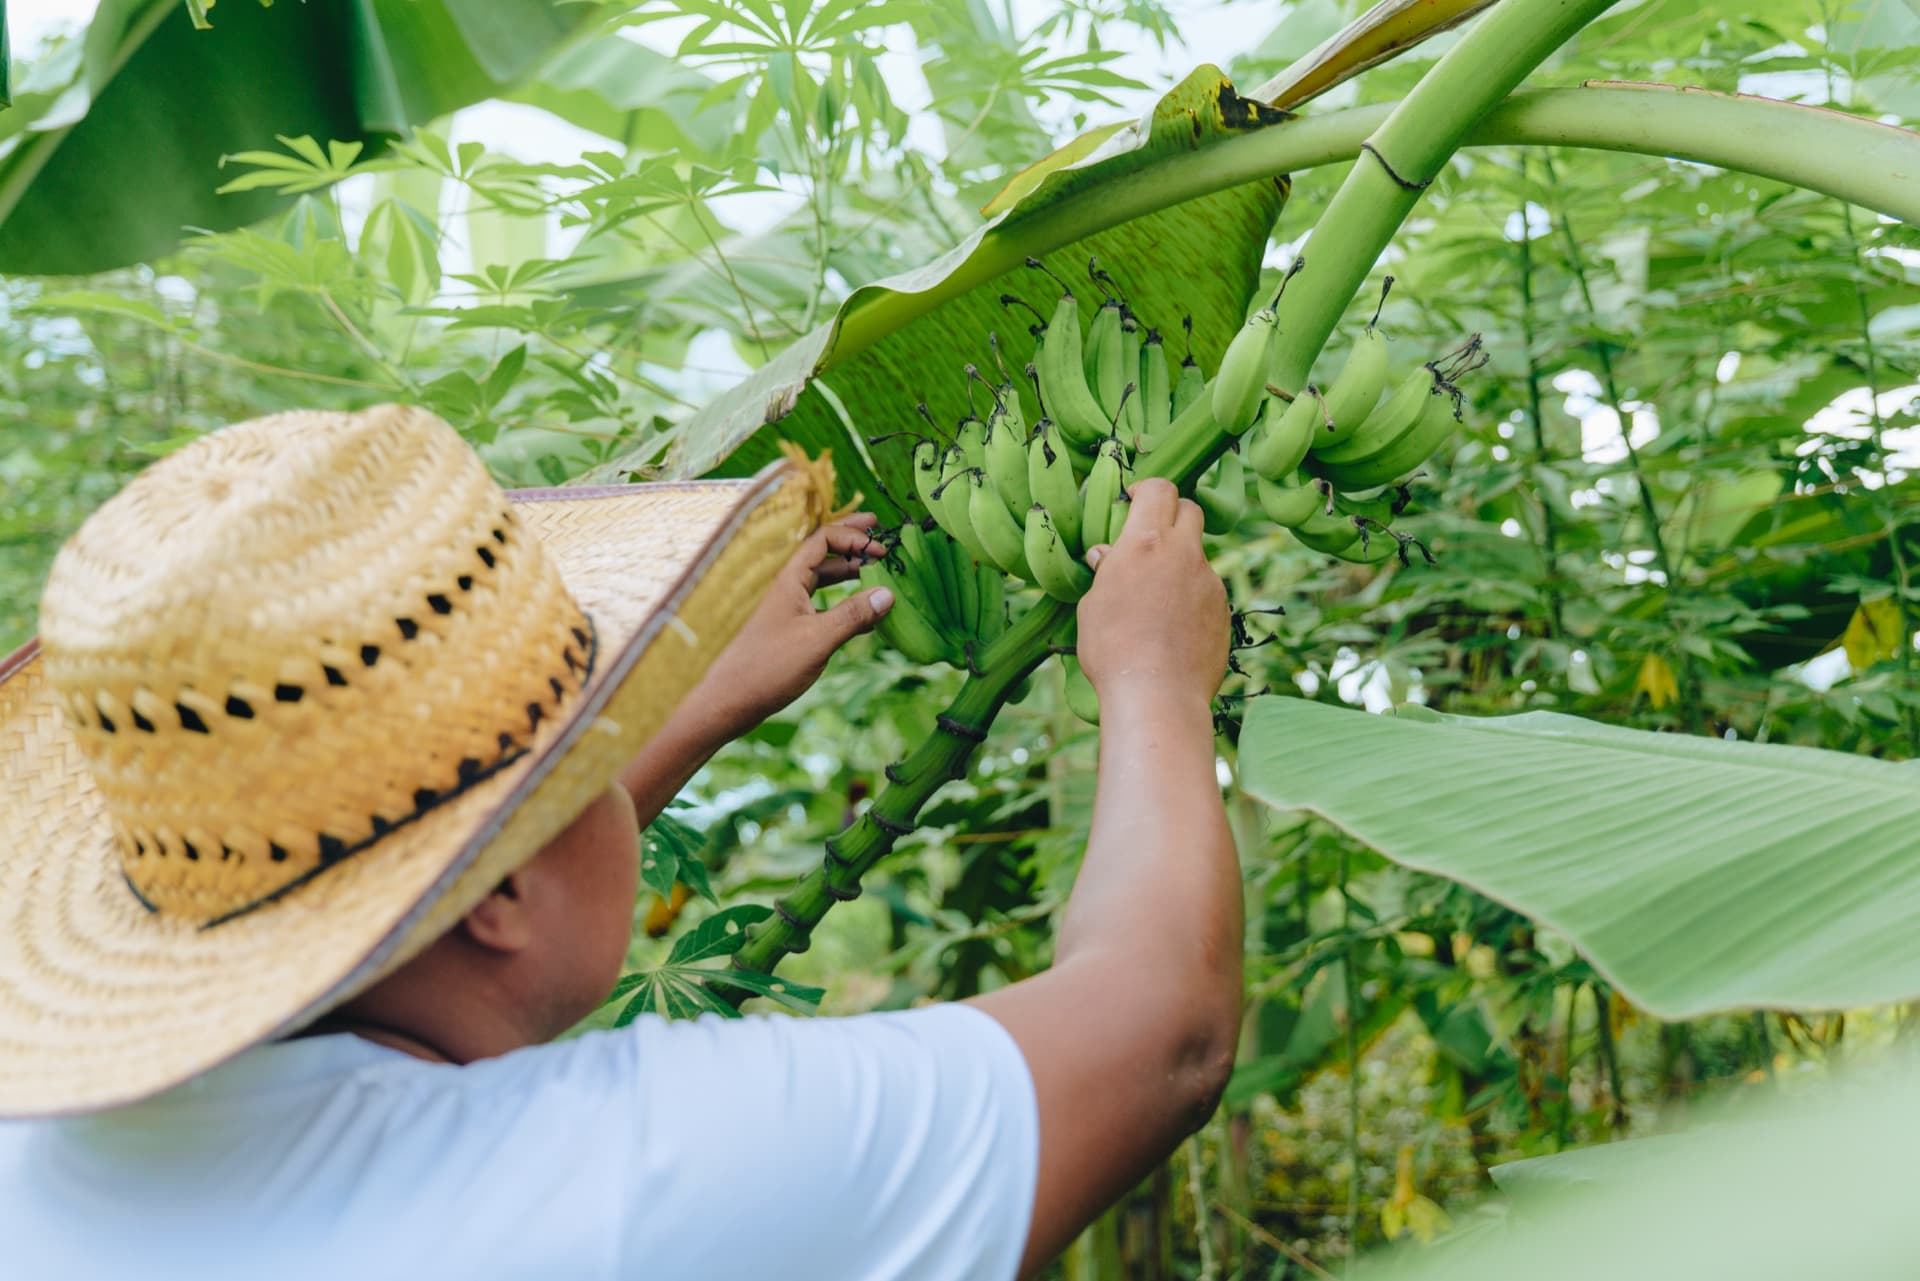 The fruit produced generates food security and economic support